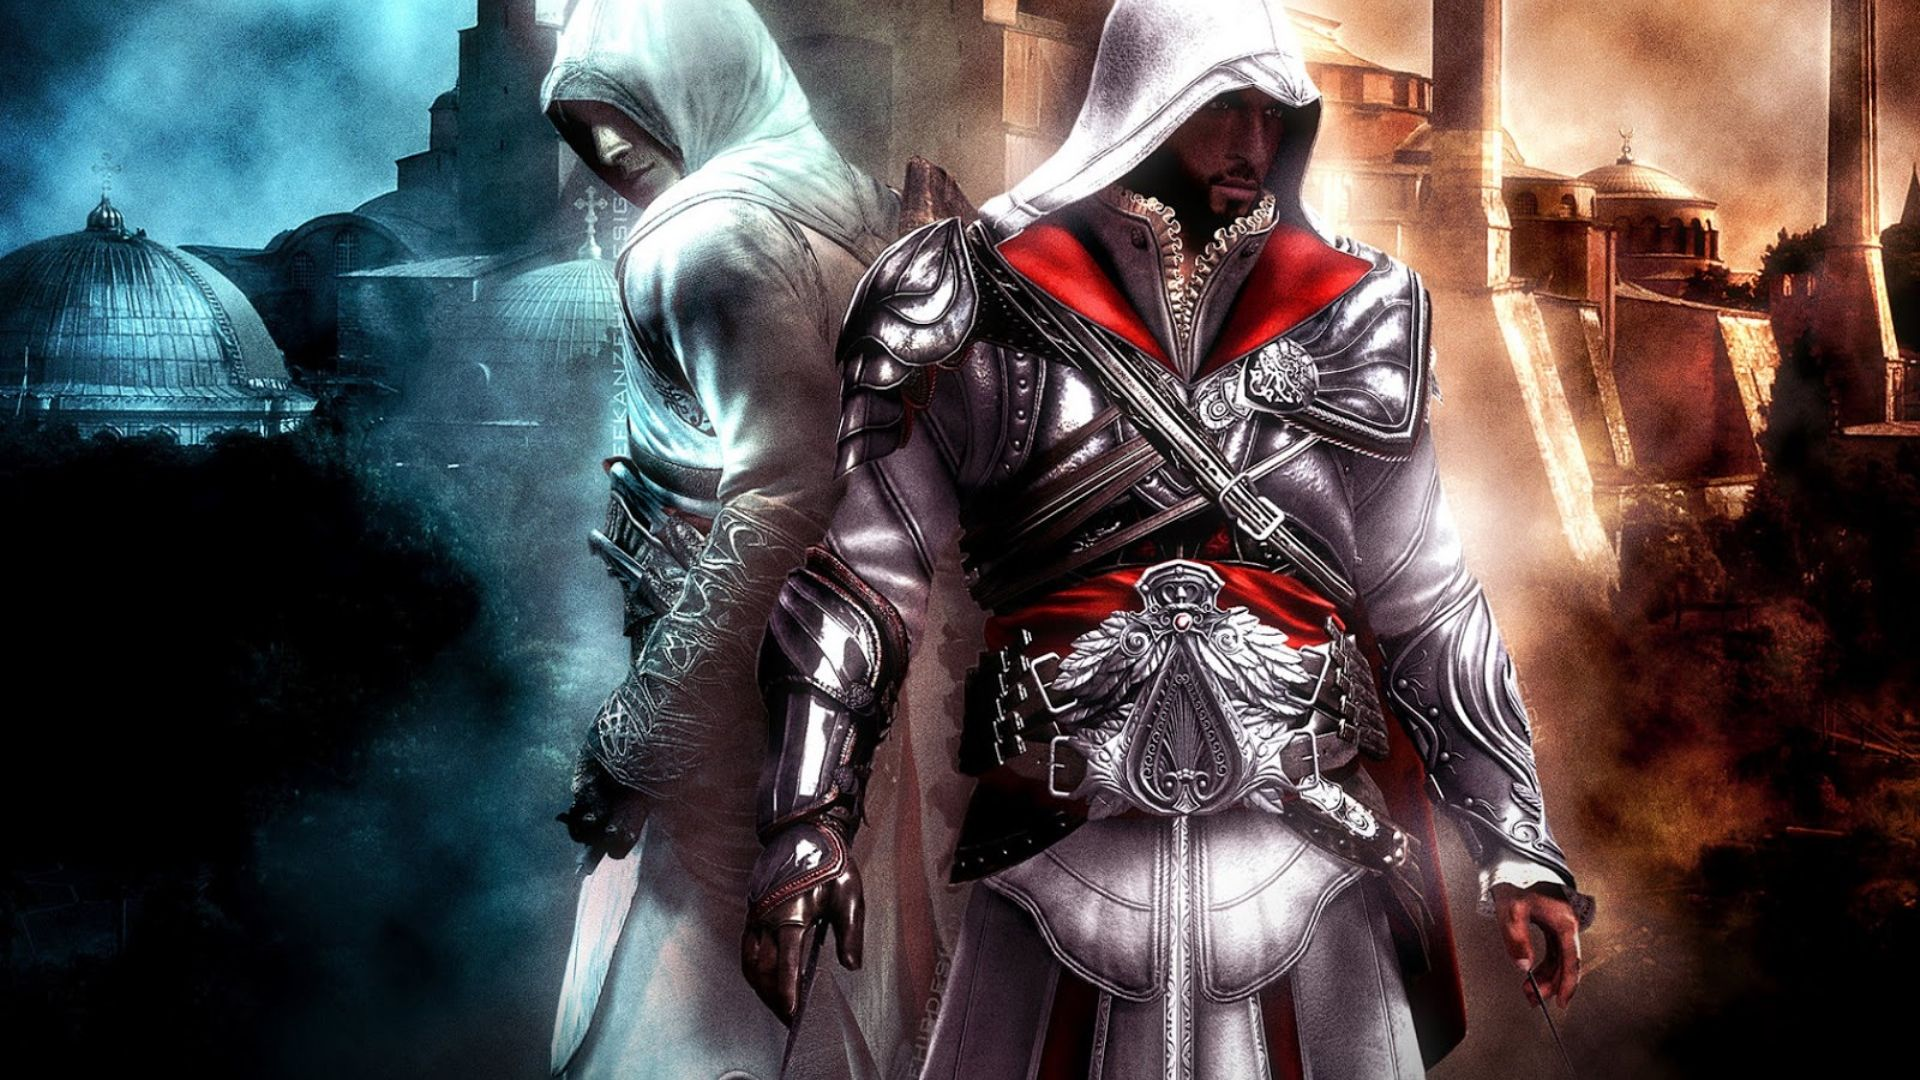 Assassins Creed Ezio Wallpapers Hd: Assassin's Creed: Revelations Wallpapers, Pictures, Images